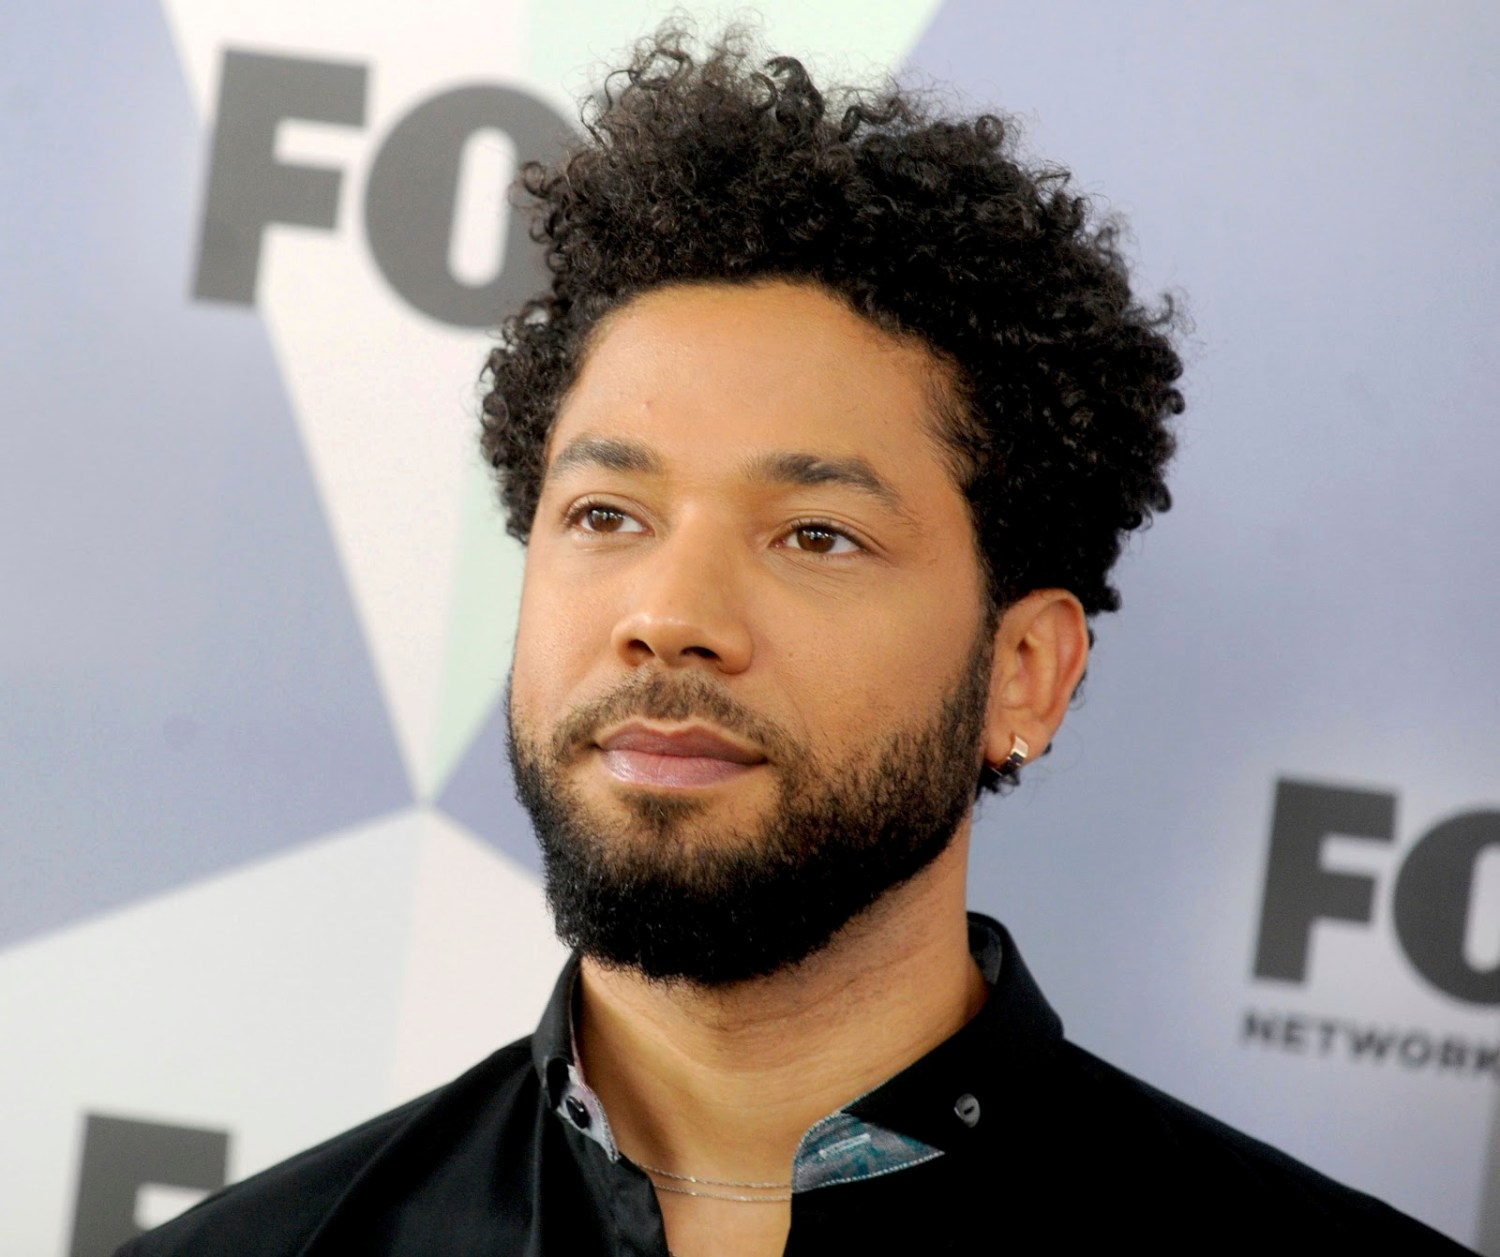 Media got Smollett attack story right; outsourcing copy/design desk is a mistake